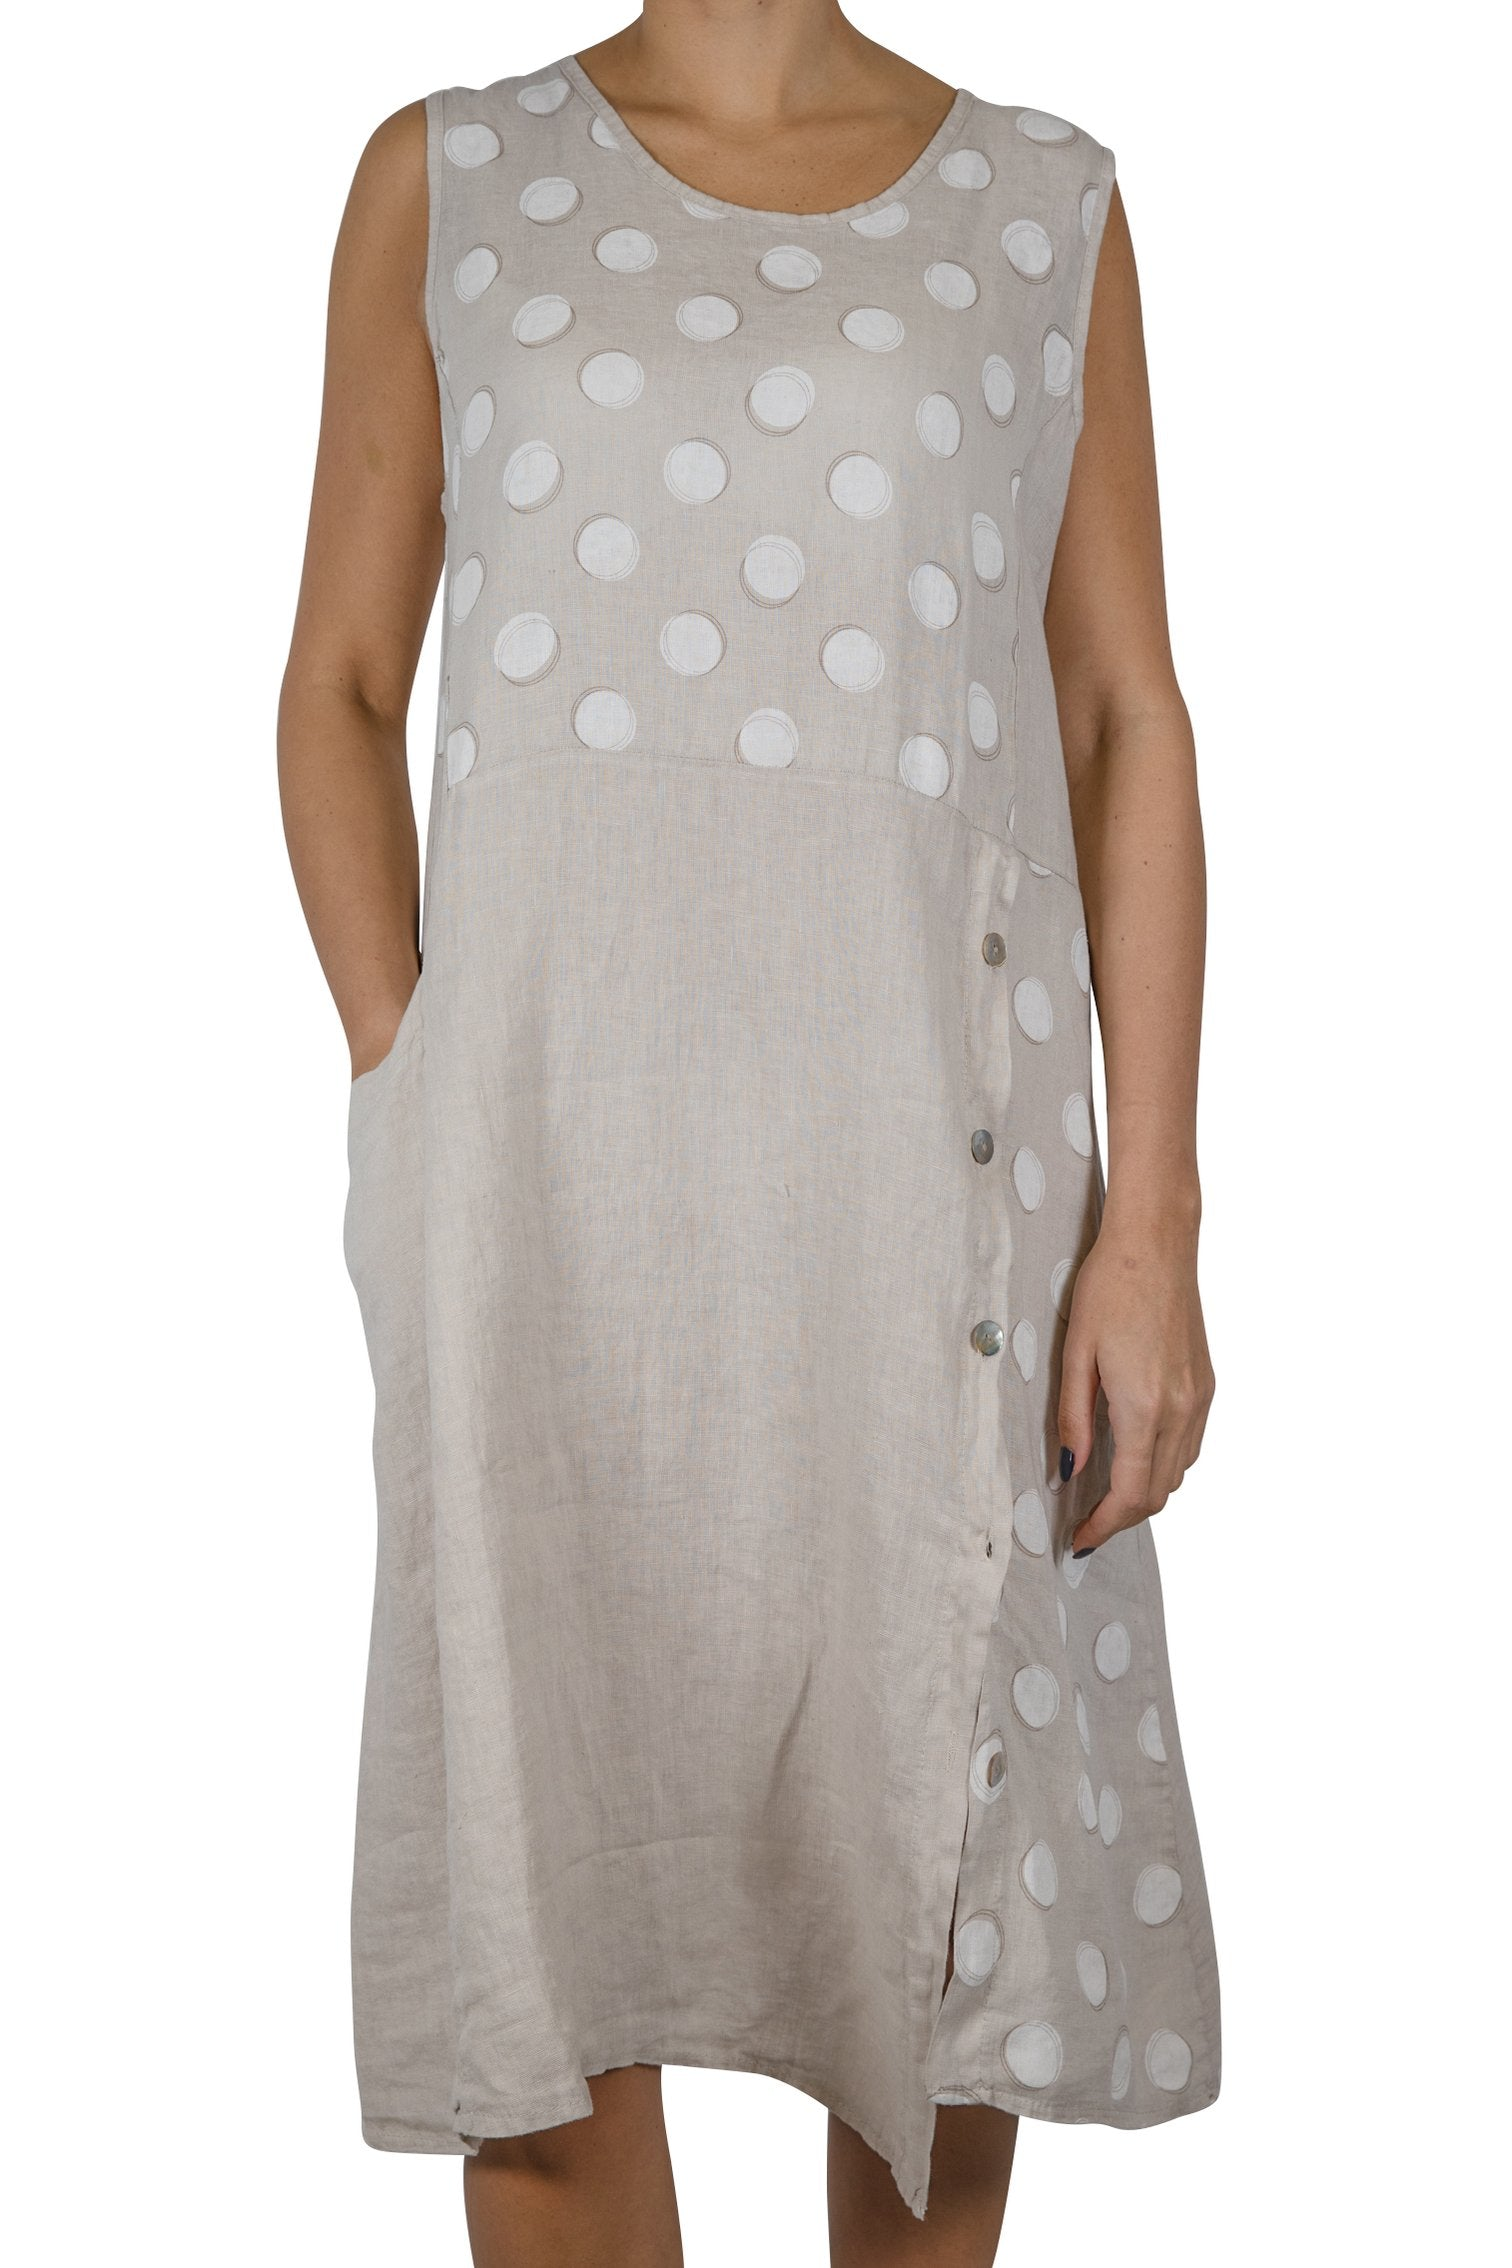 ETERNELLE LINEN DRESS WITH POLKA DOTS-TAUPE